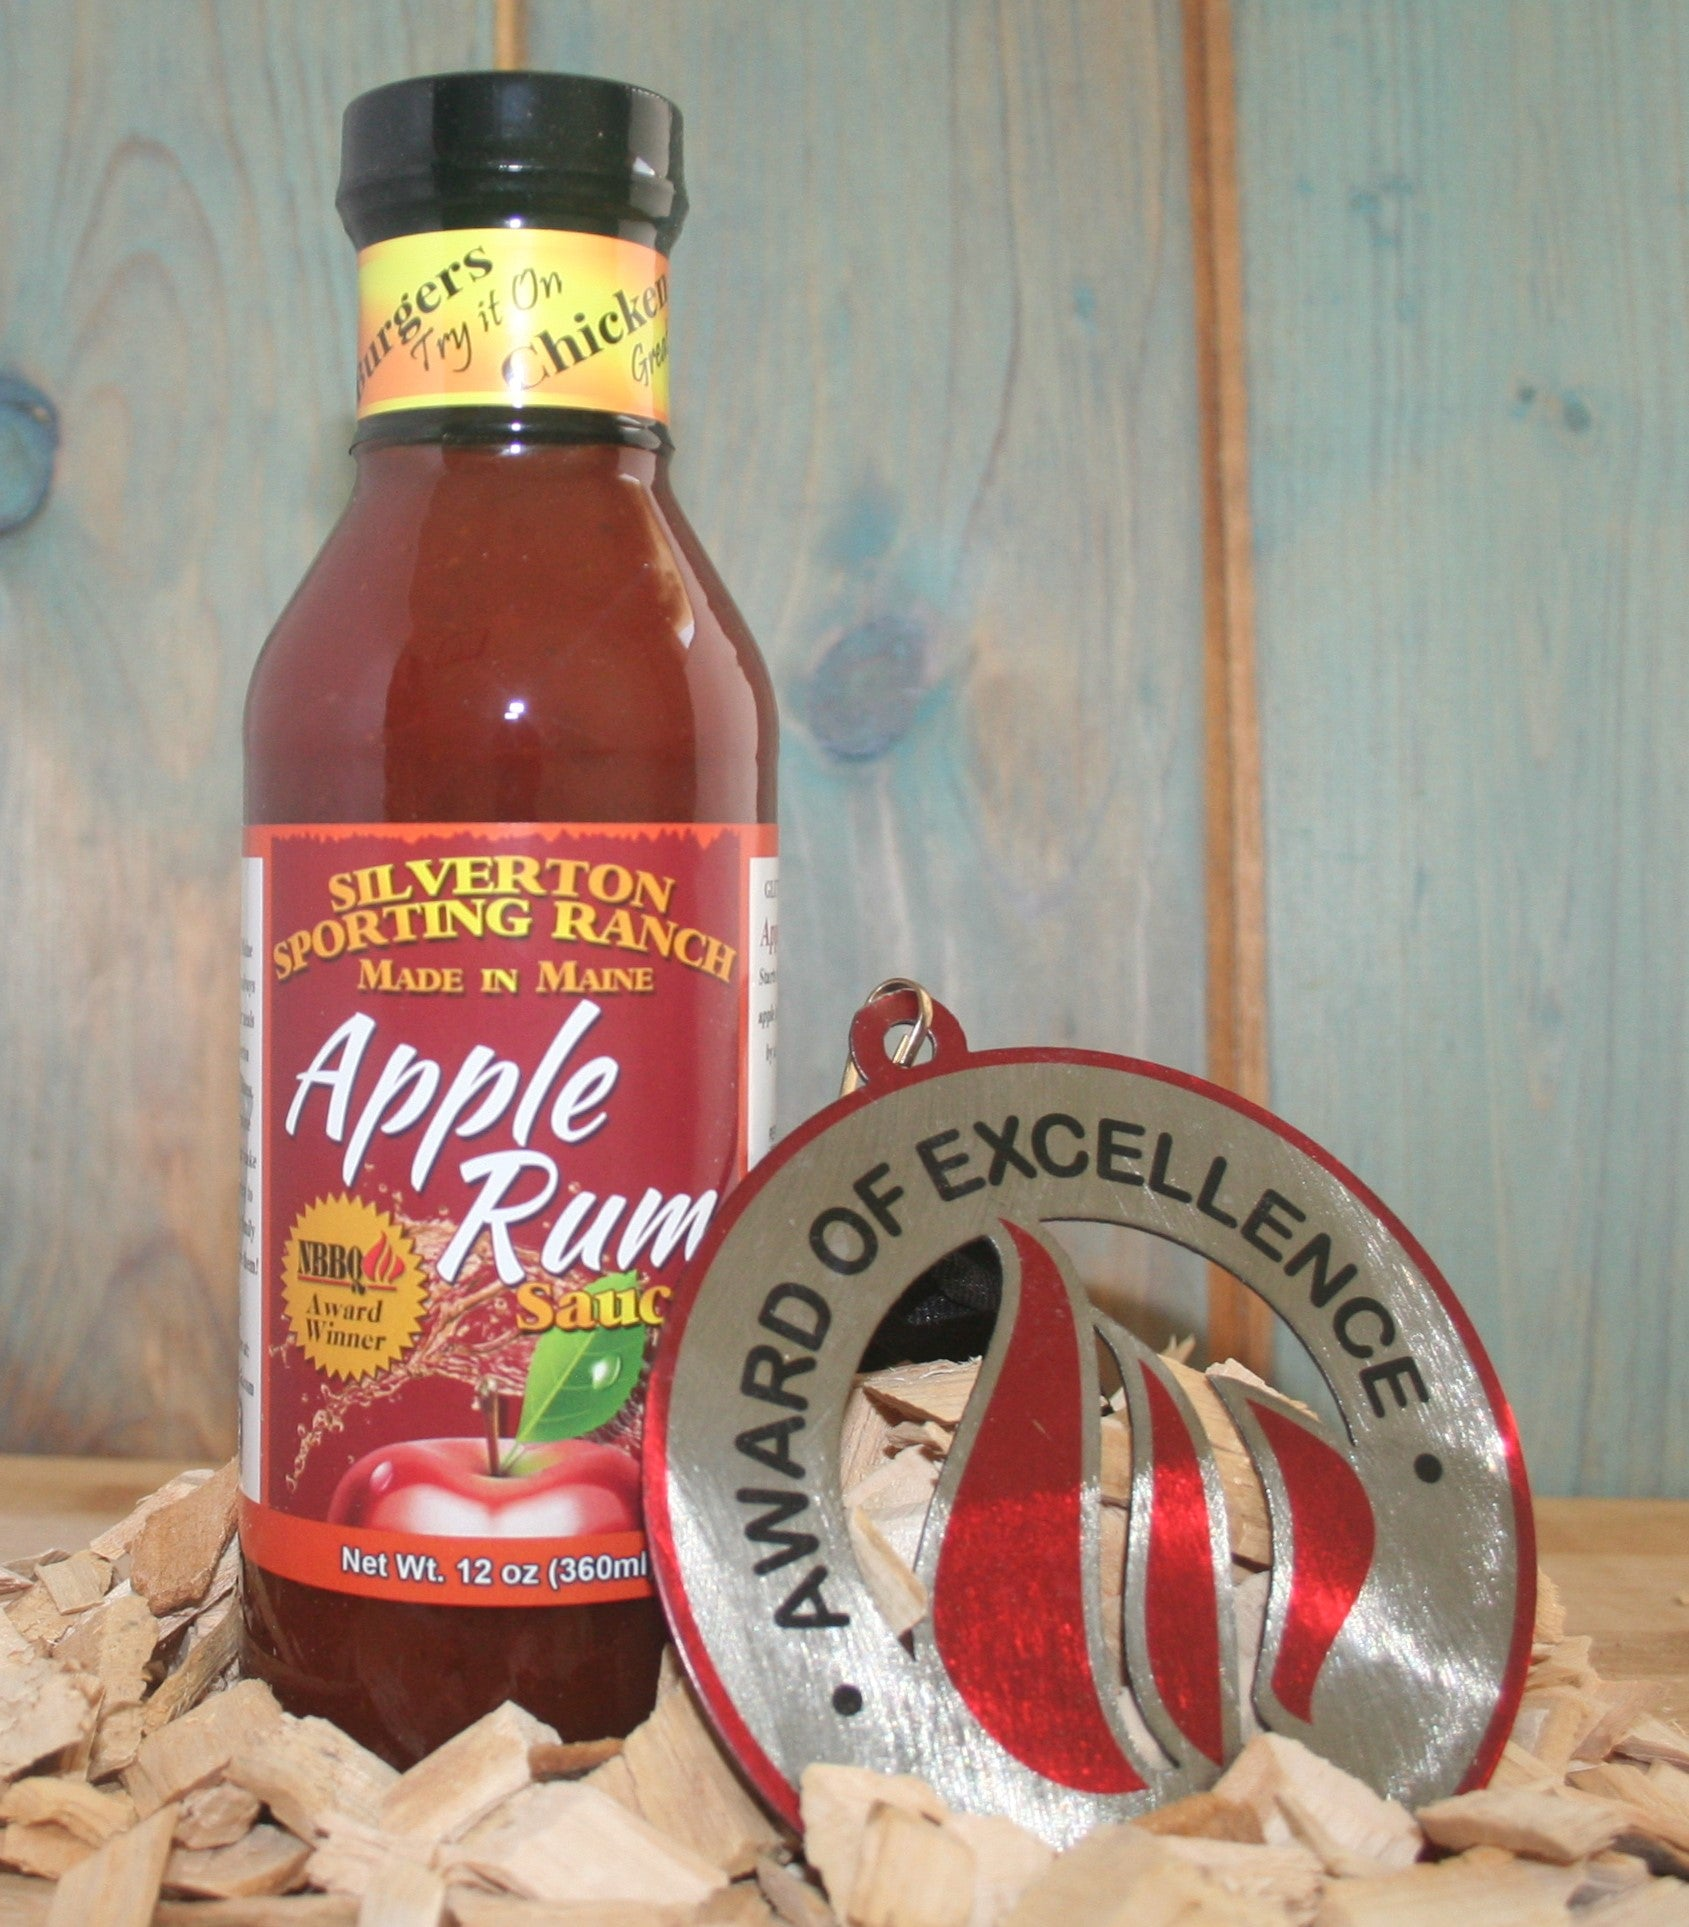 Apple Rum BBQ Sauce Award Winning Gluten Free Sauce